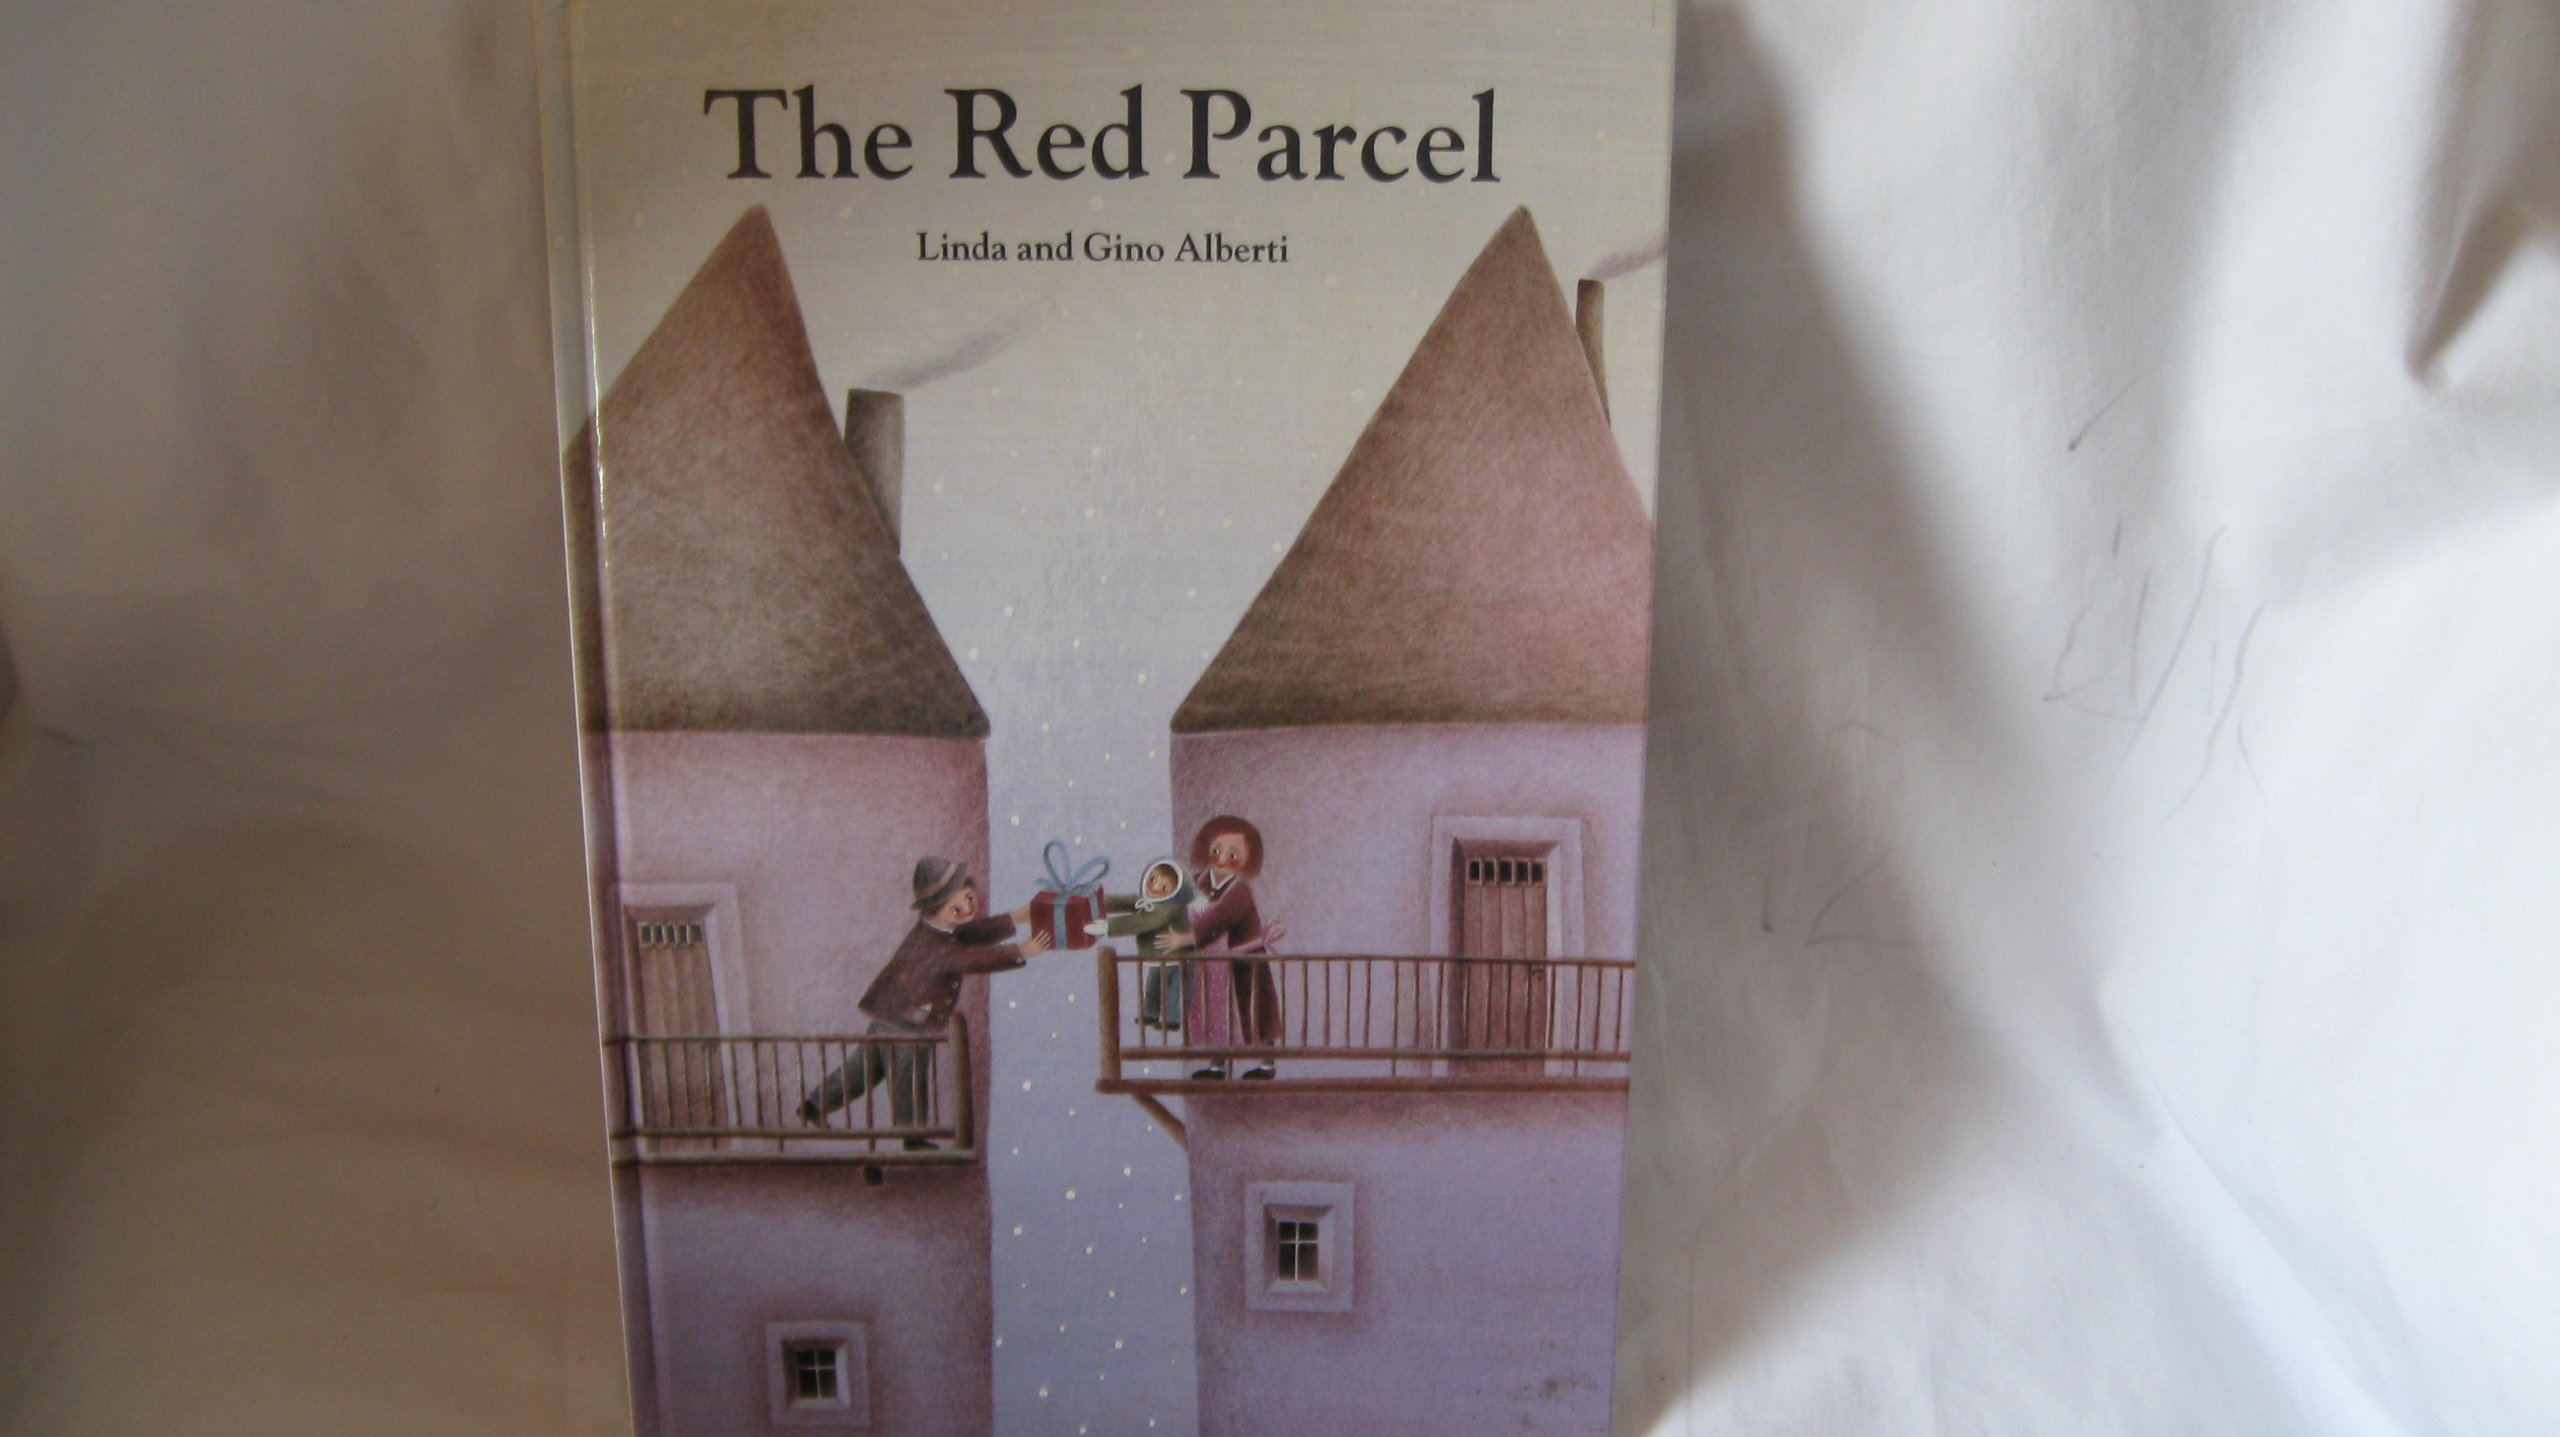 The Red Parcel